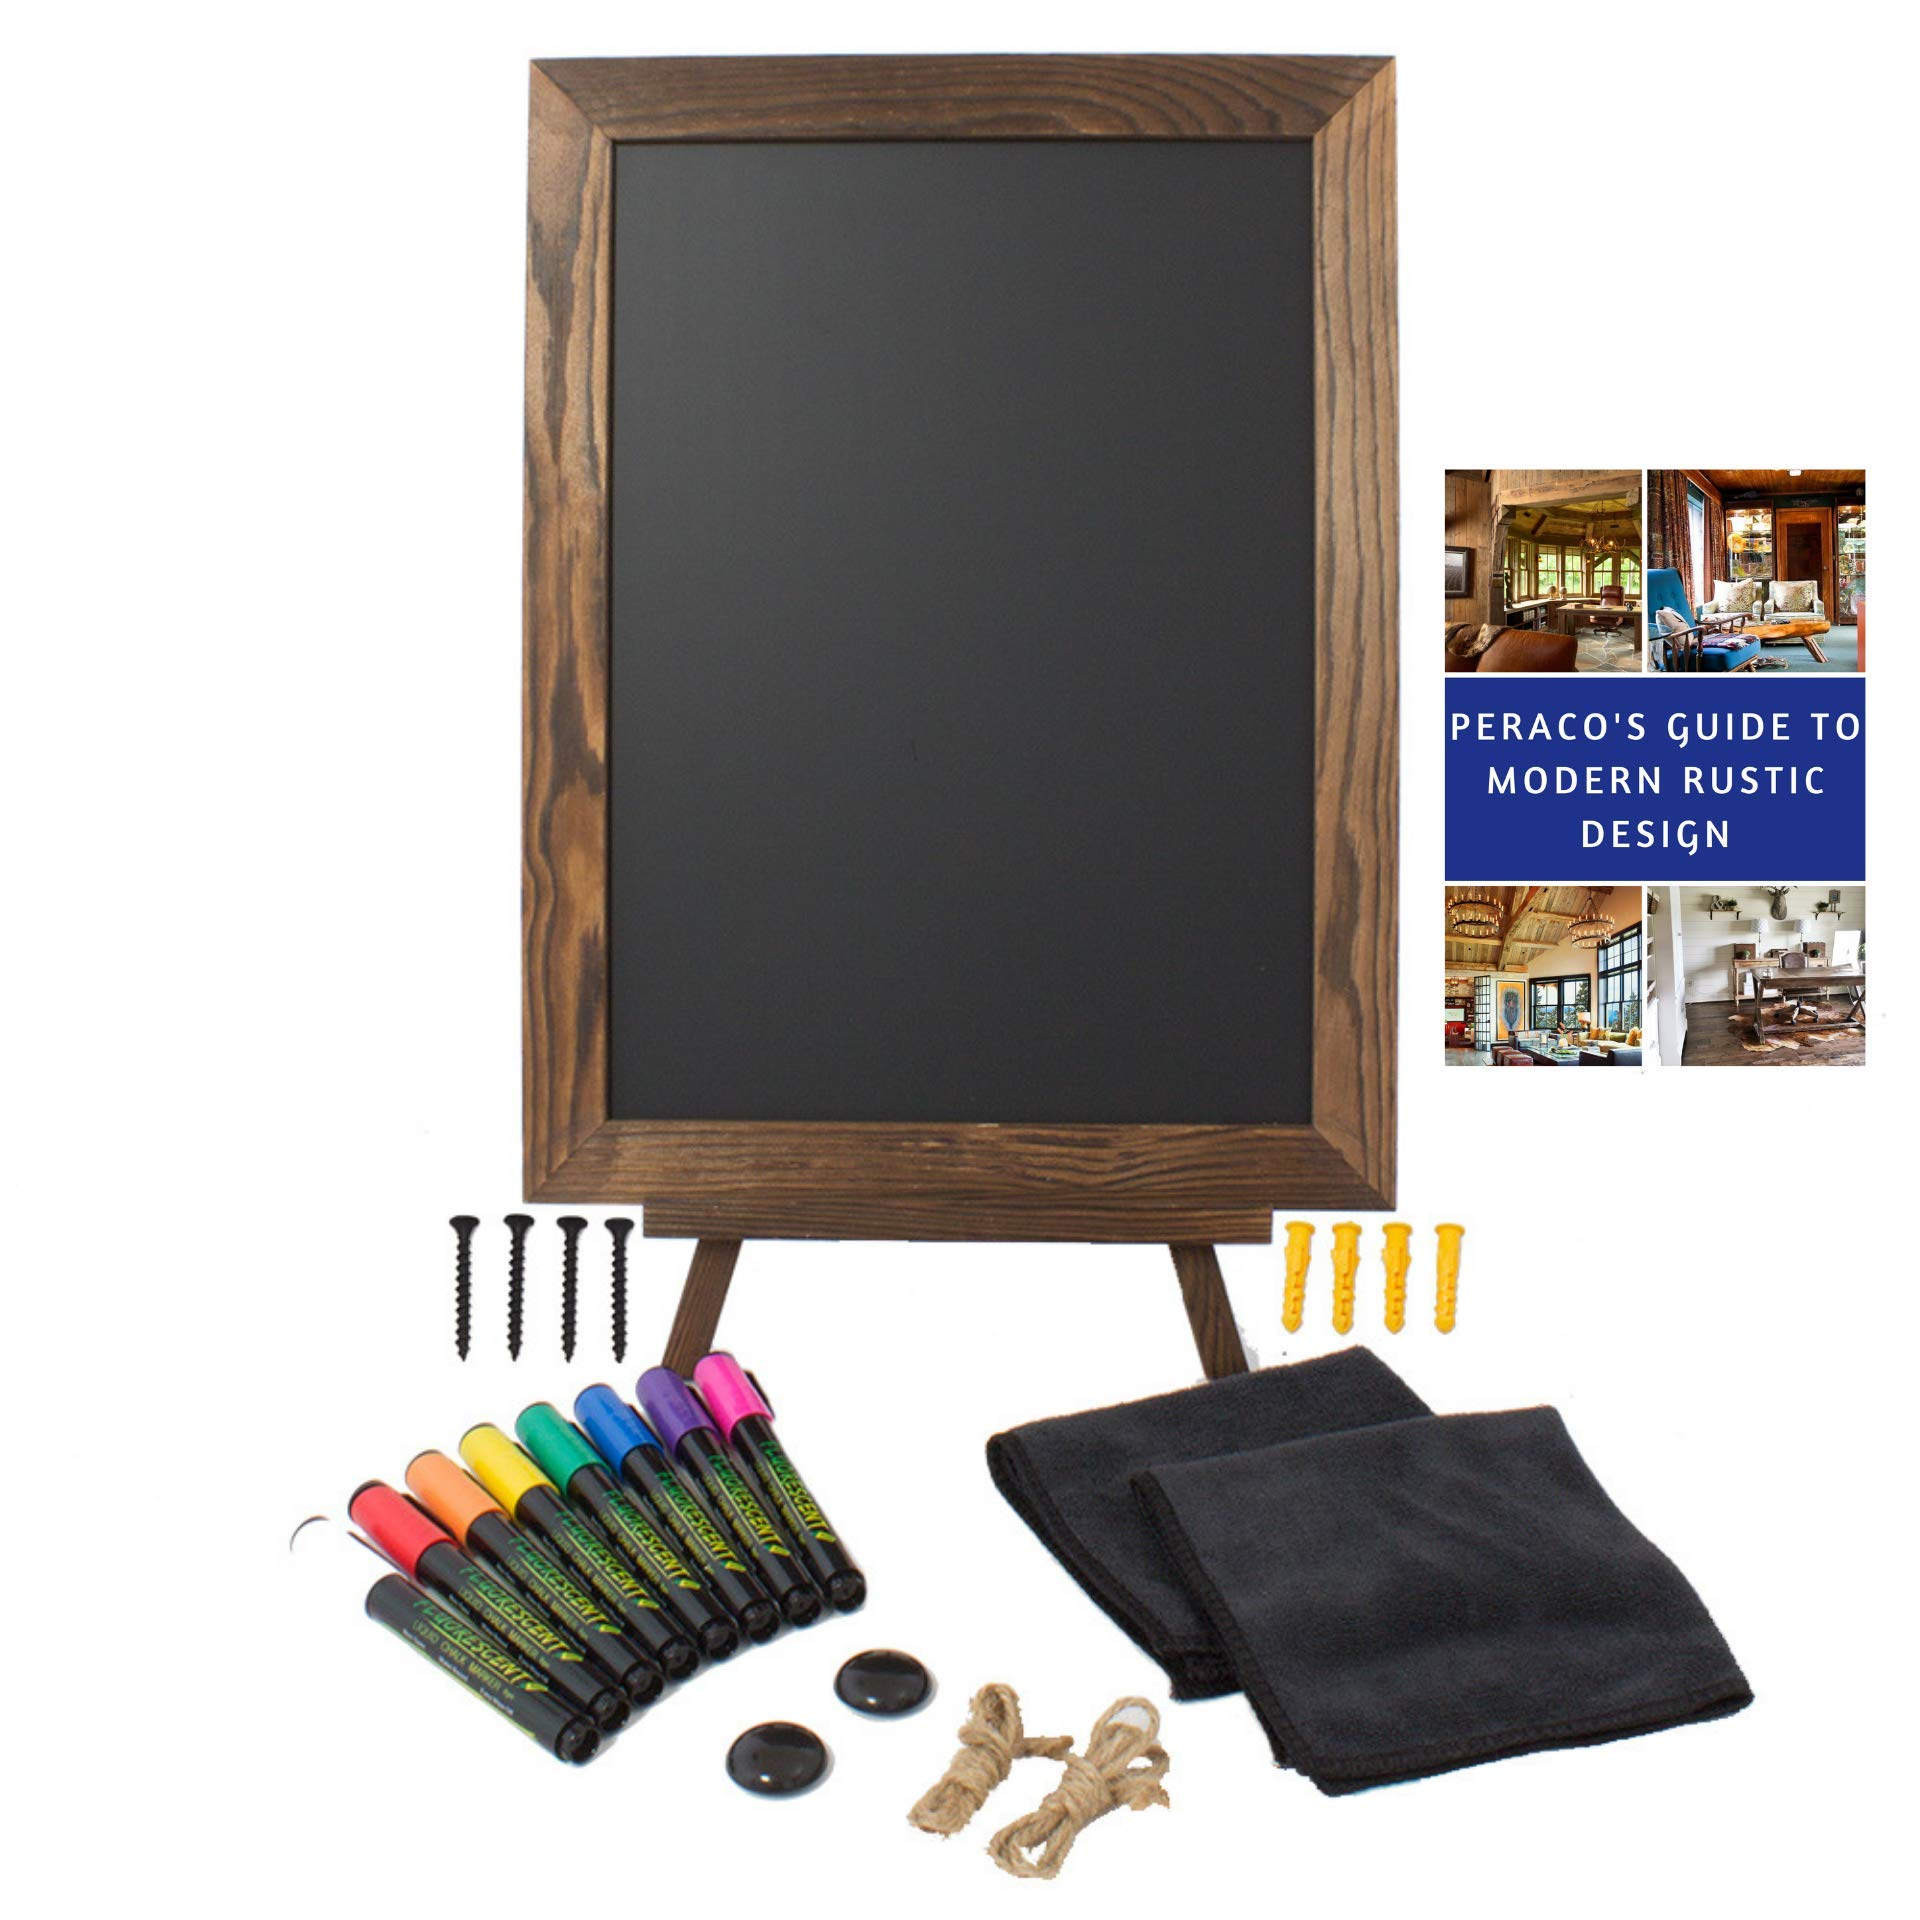 16''x12'' Magnetic Rustic Chalkboard Sign with Accessories - Includes 8 Liquid Chalk Markers, 2 Magnets, 2 Microfiber Towels, 1 Chalkboard Easel Stand, and 2 Pieces of Rope -Perfect for Decor by Peraco by Peraco